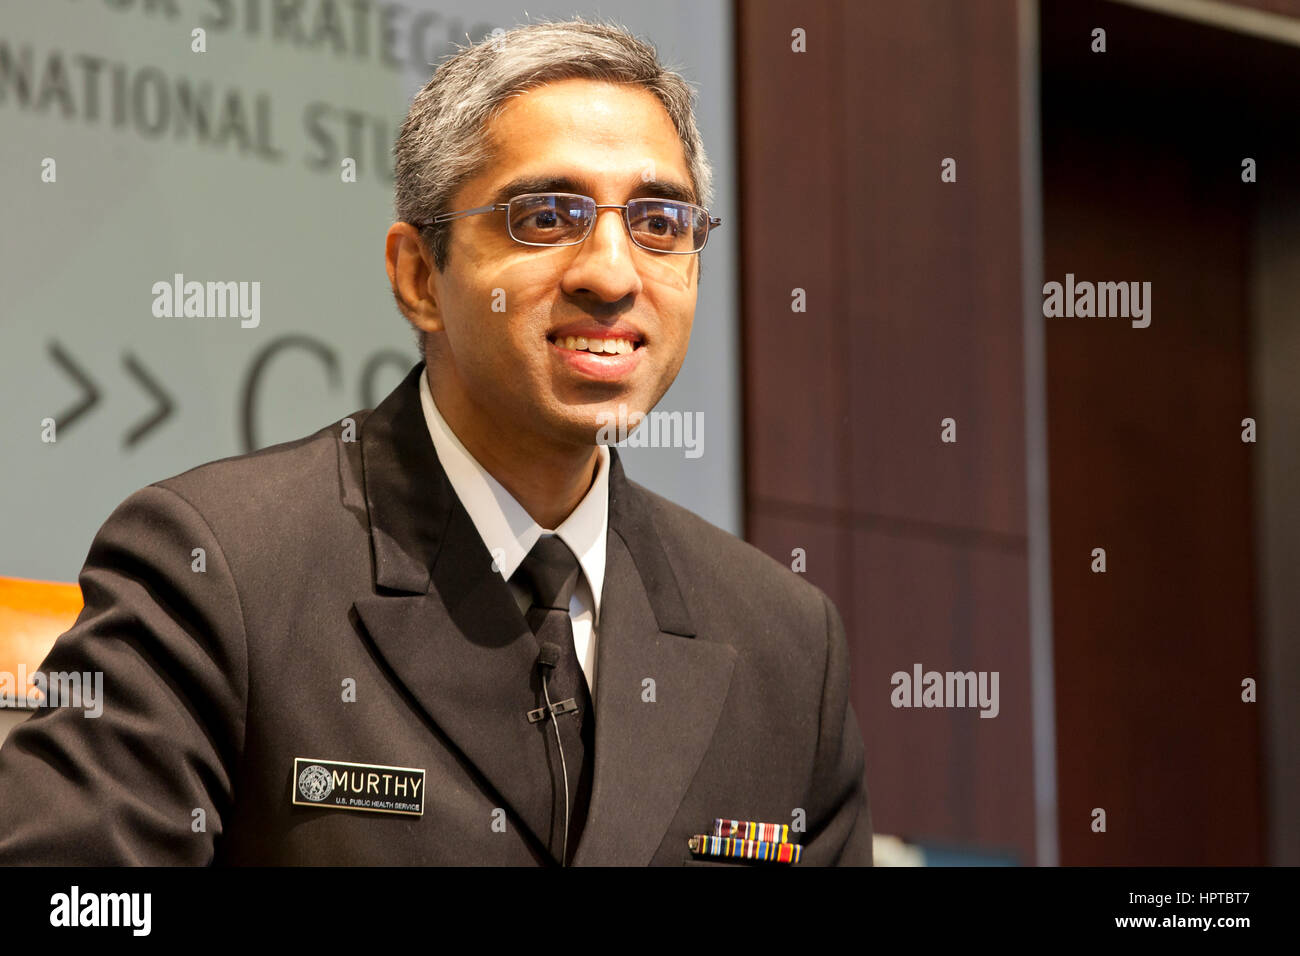 February 24, 2017, Washington, DC USA: US Surgeon General Dr. Vivek H. Murthy discusses current US medical issues, - Stock Image